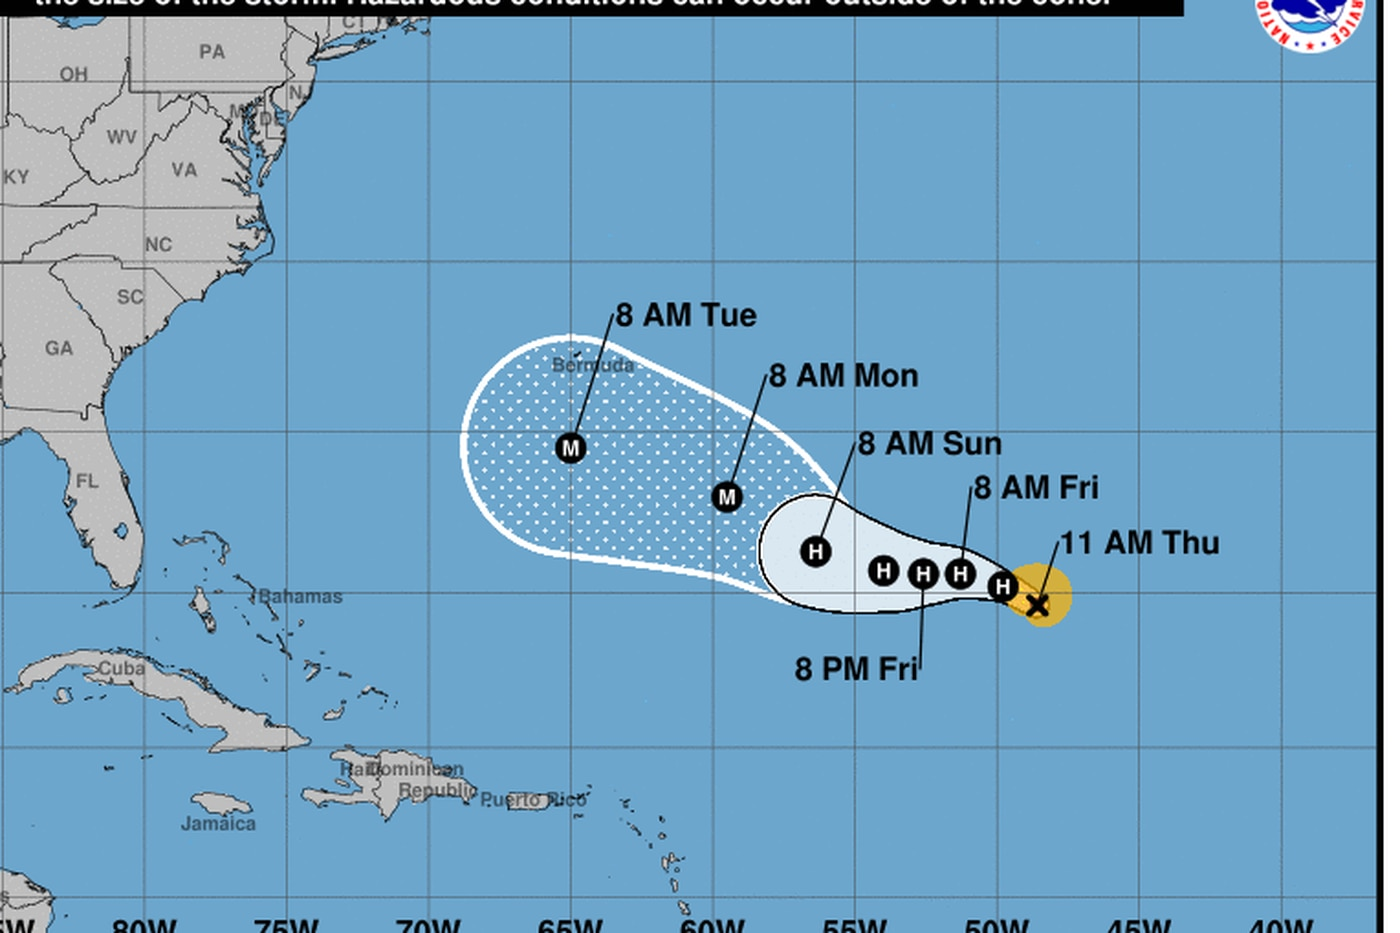 Tropical storms, depressions and hurricanes quickly forming over Atlantic Ocean